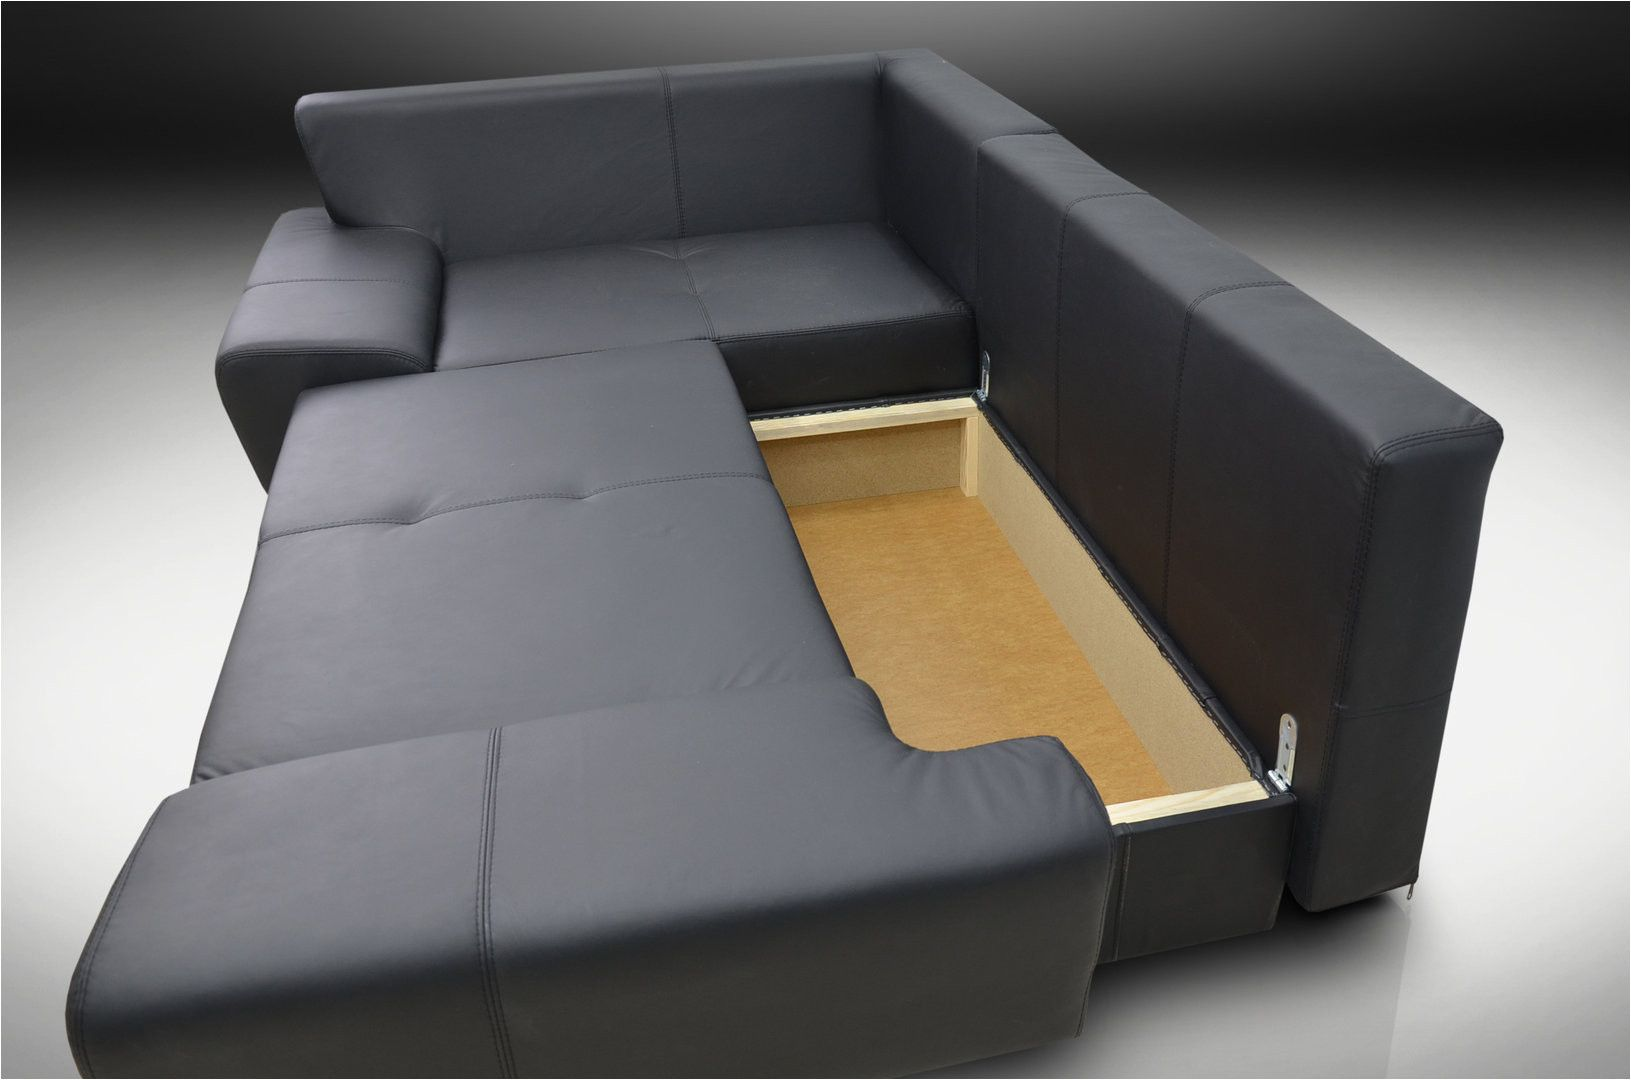 Cheap Sofa Beds Under 100 Futon Cheap Bunk Beds For Sale Under 100 Bunk Beds Big Lots Full Size Of Arm Chaise Sofa Sectional Sleeper Sofa Queen Sofa Sleeper